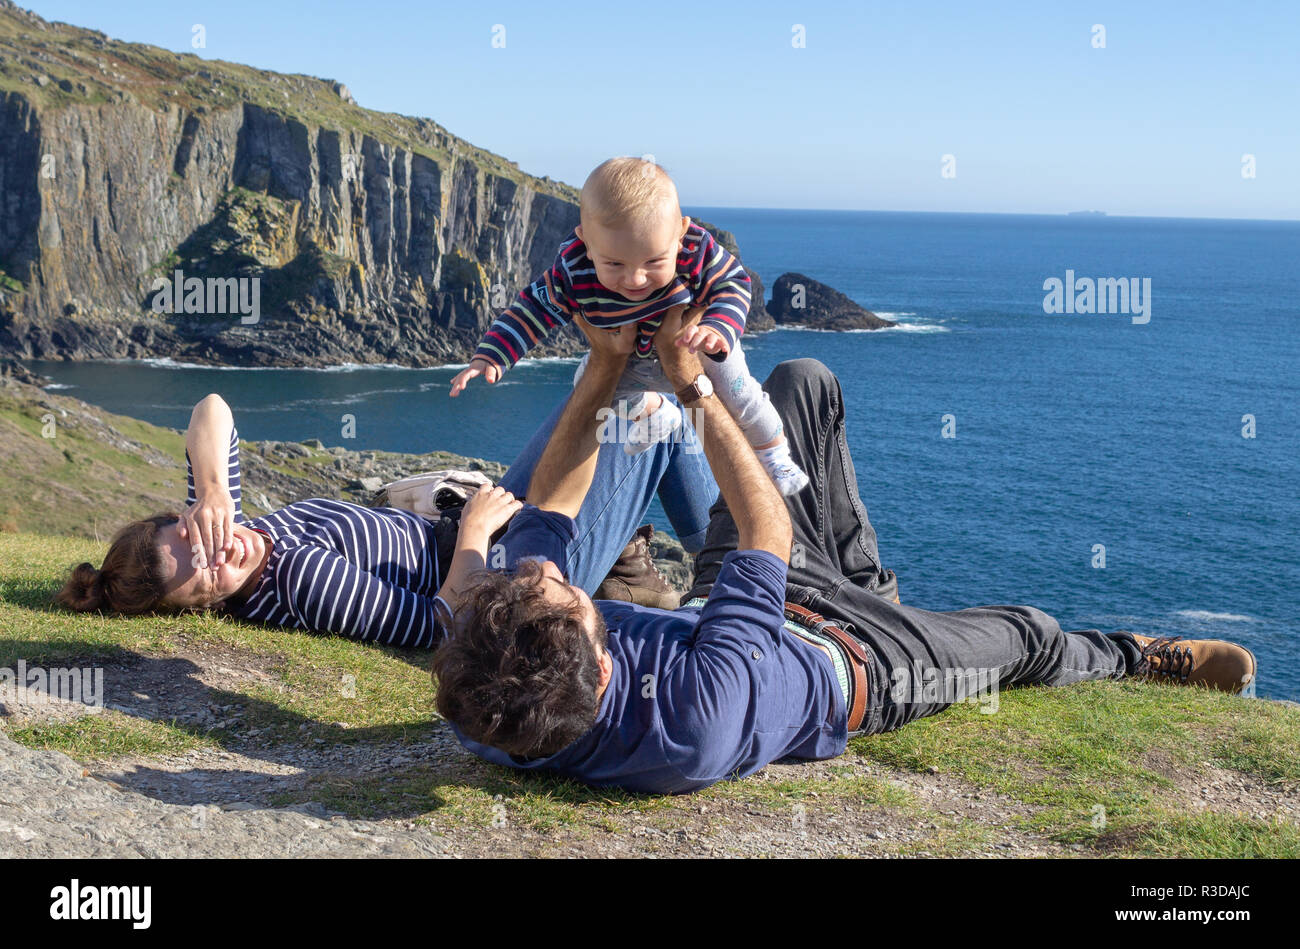 family-on-summer-holiday-with-small-child-on-a-cliff-top-or-clifftop-baltimore-west-cork-ireland-R3DAJC.jpg